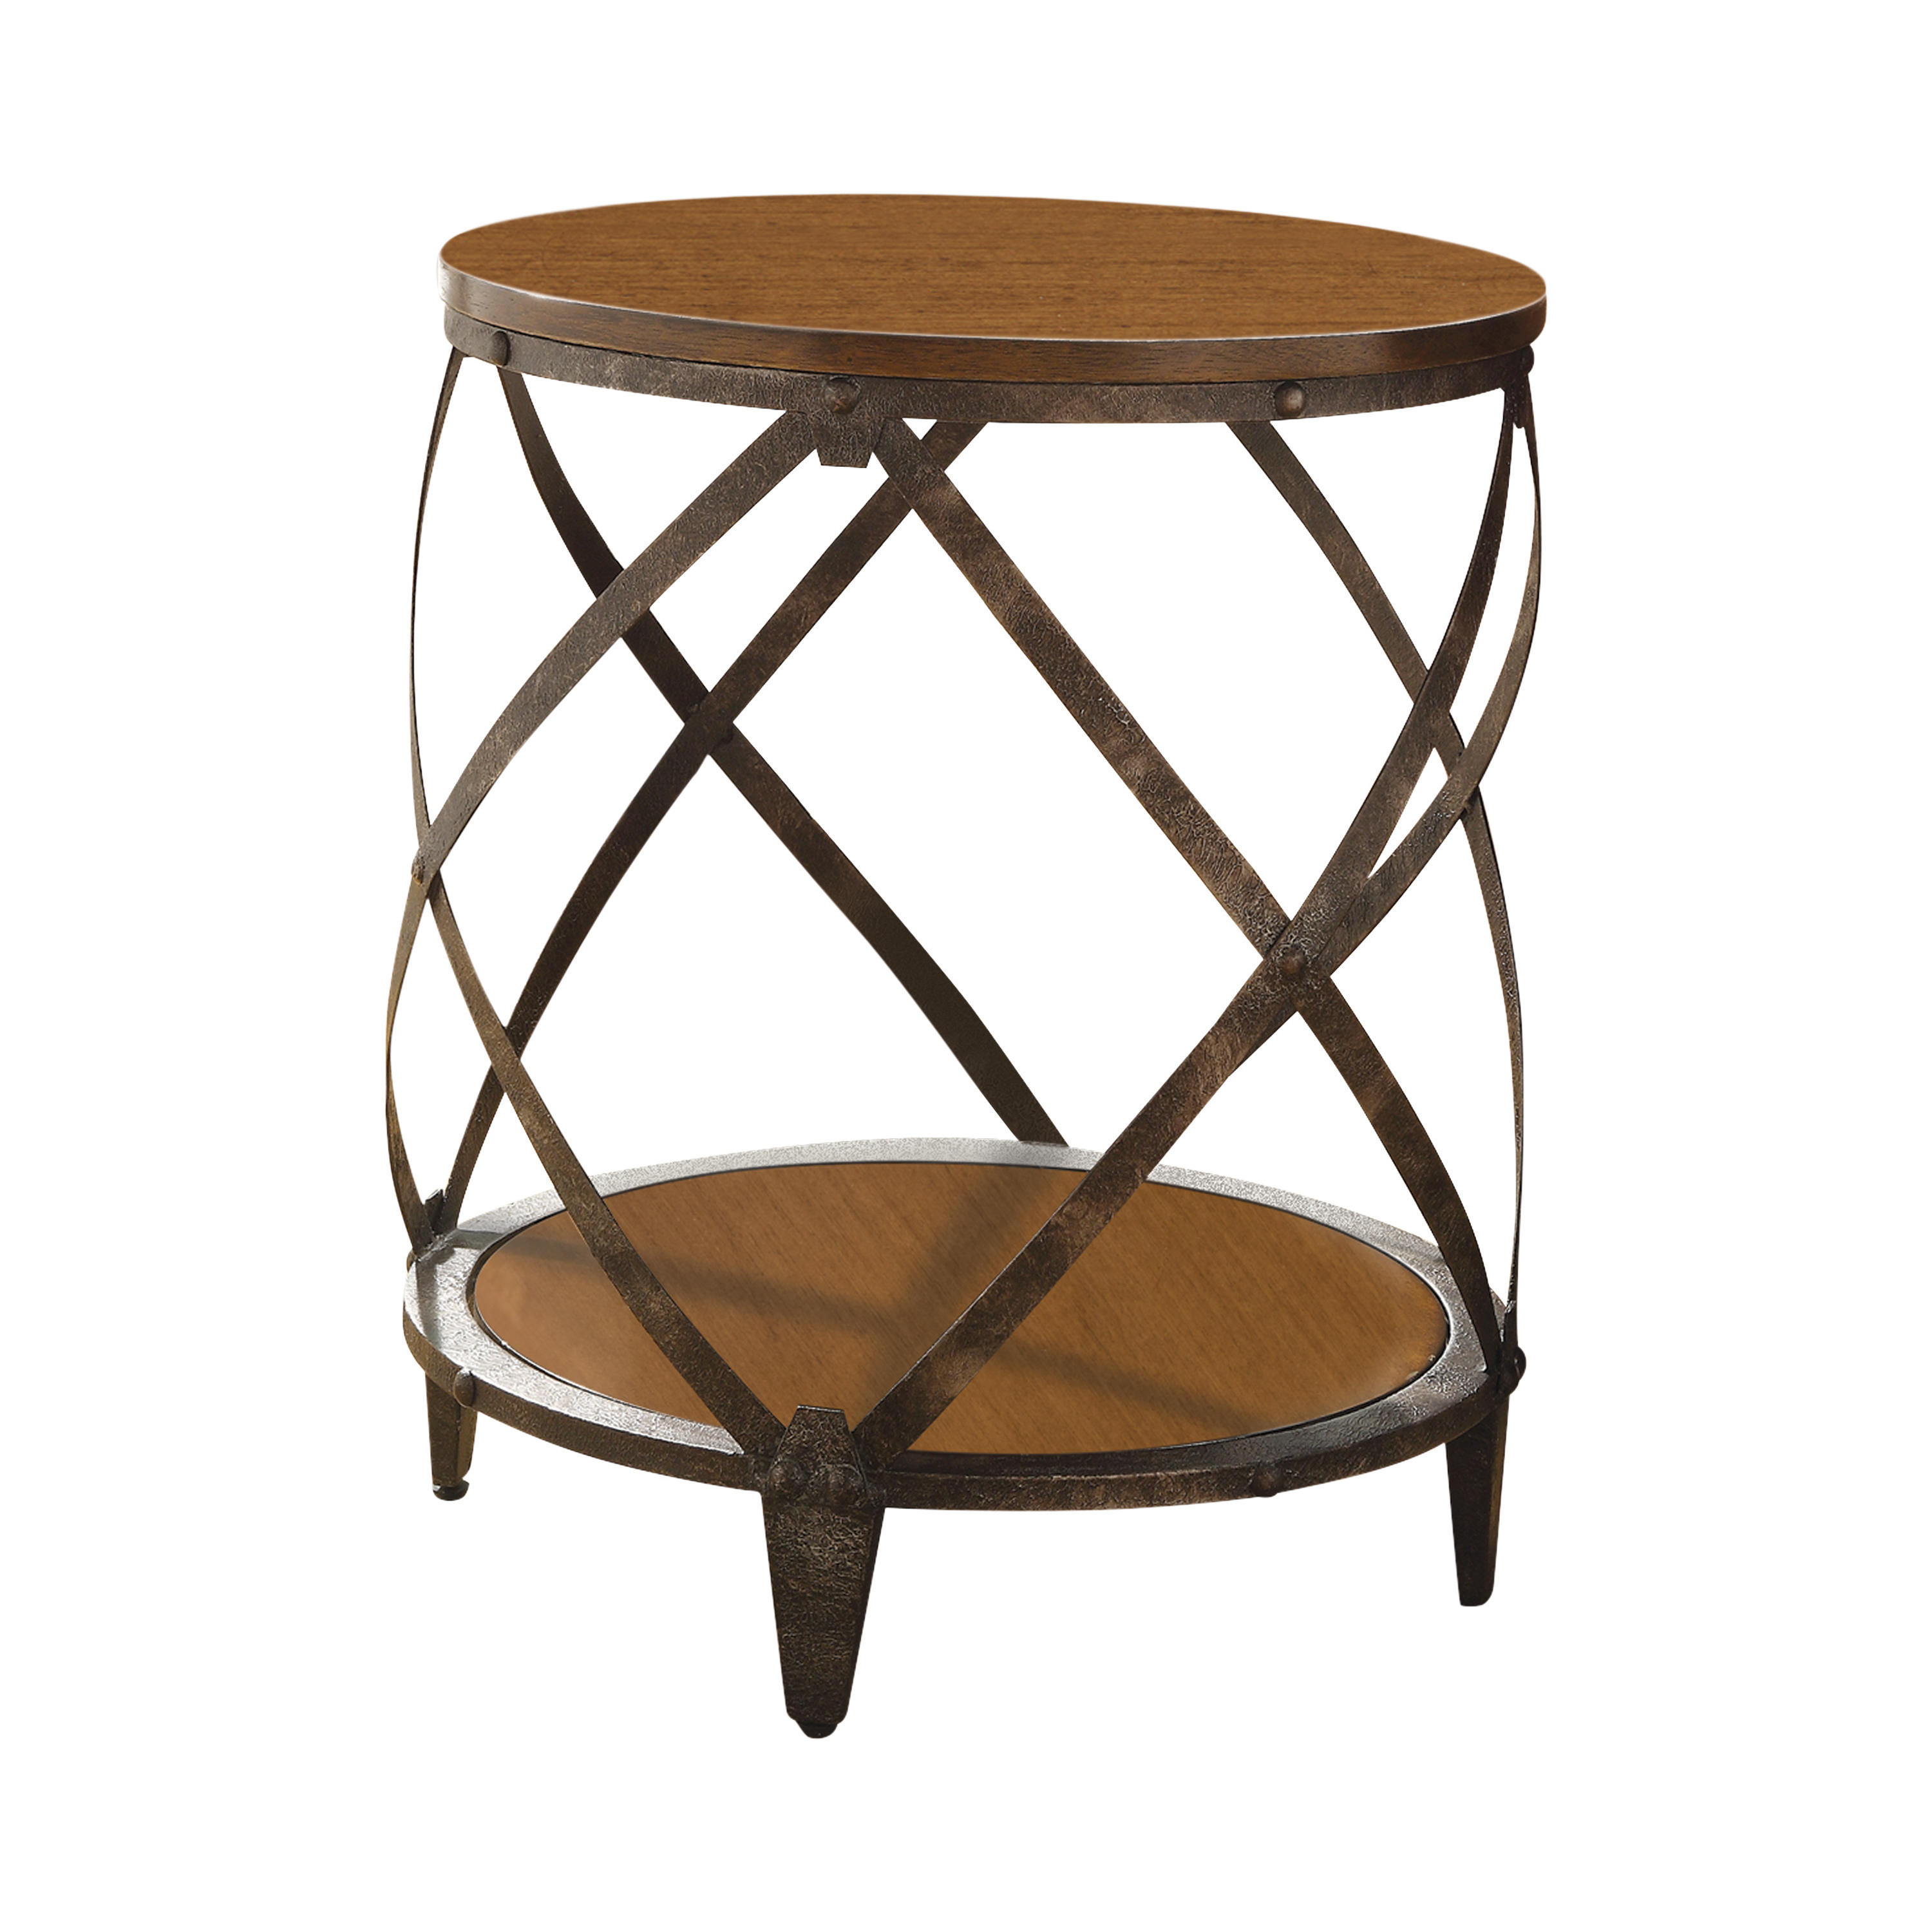 Round metal accent table brown and black